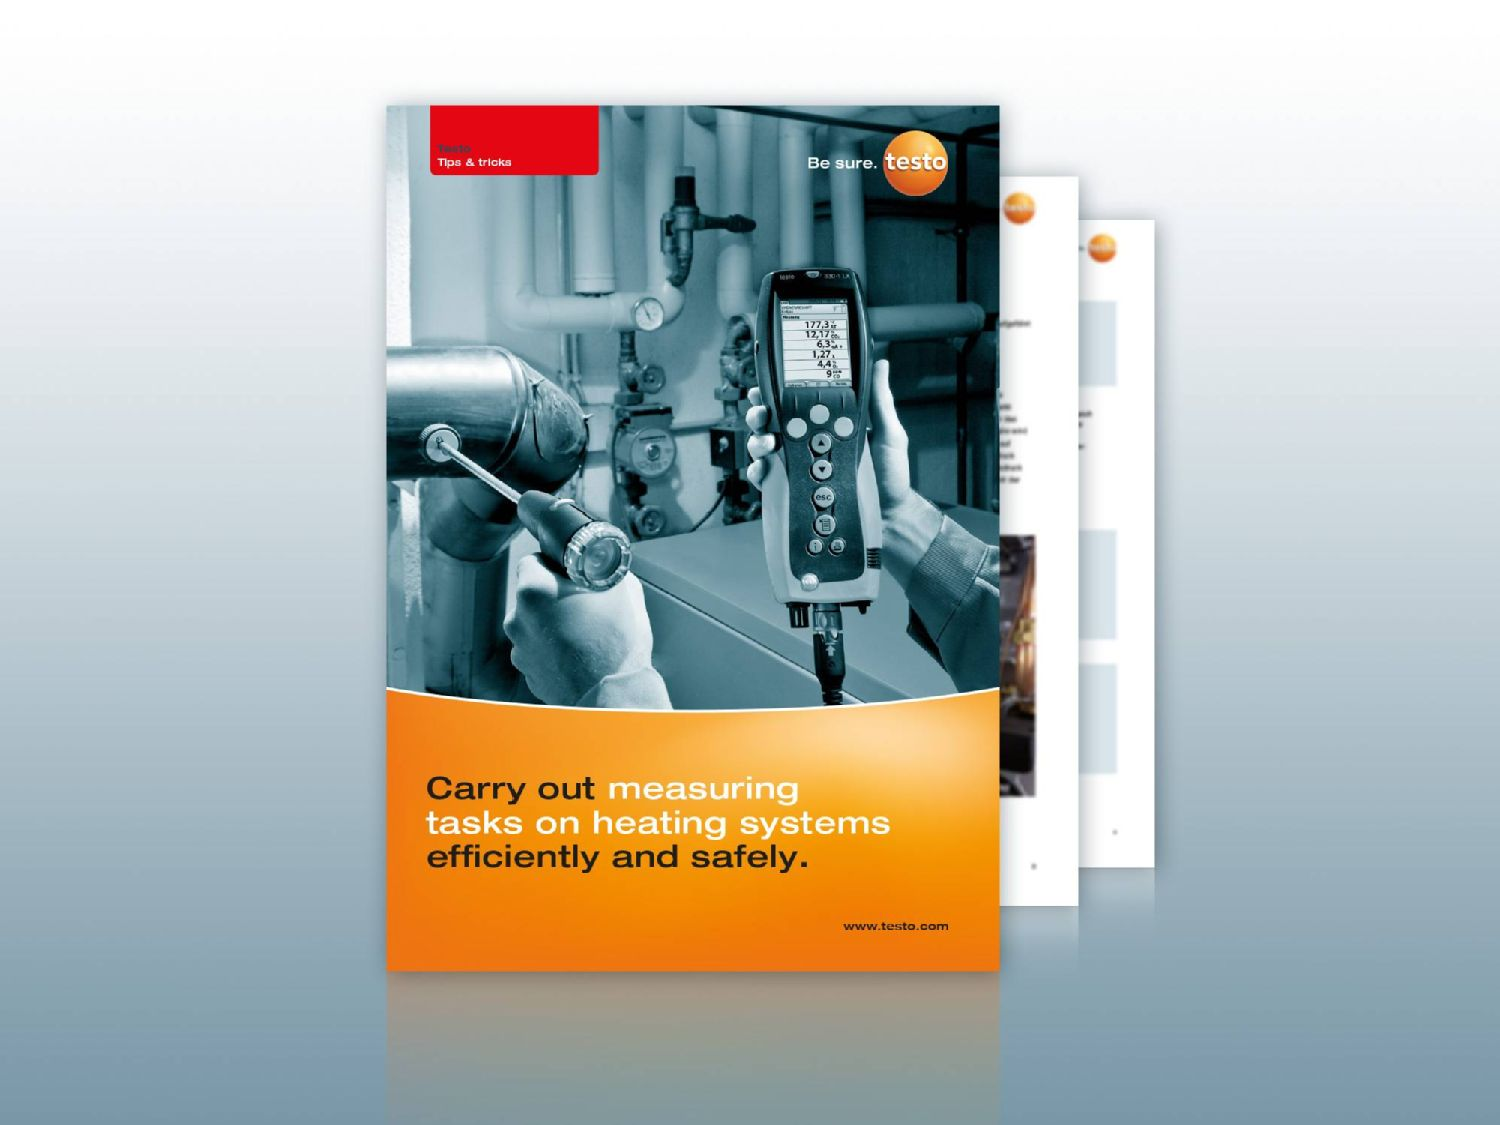 Tips and tricks: Carry out measuring tasks on heating systems efficiently and safely